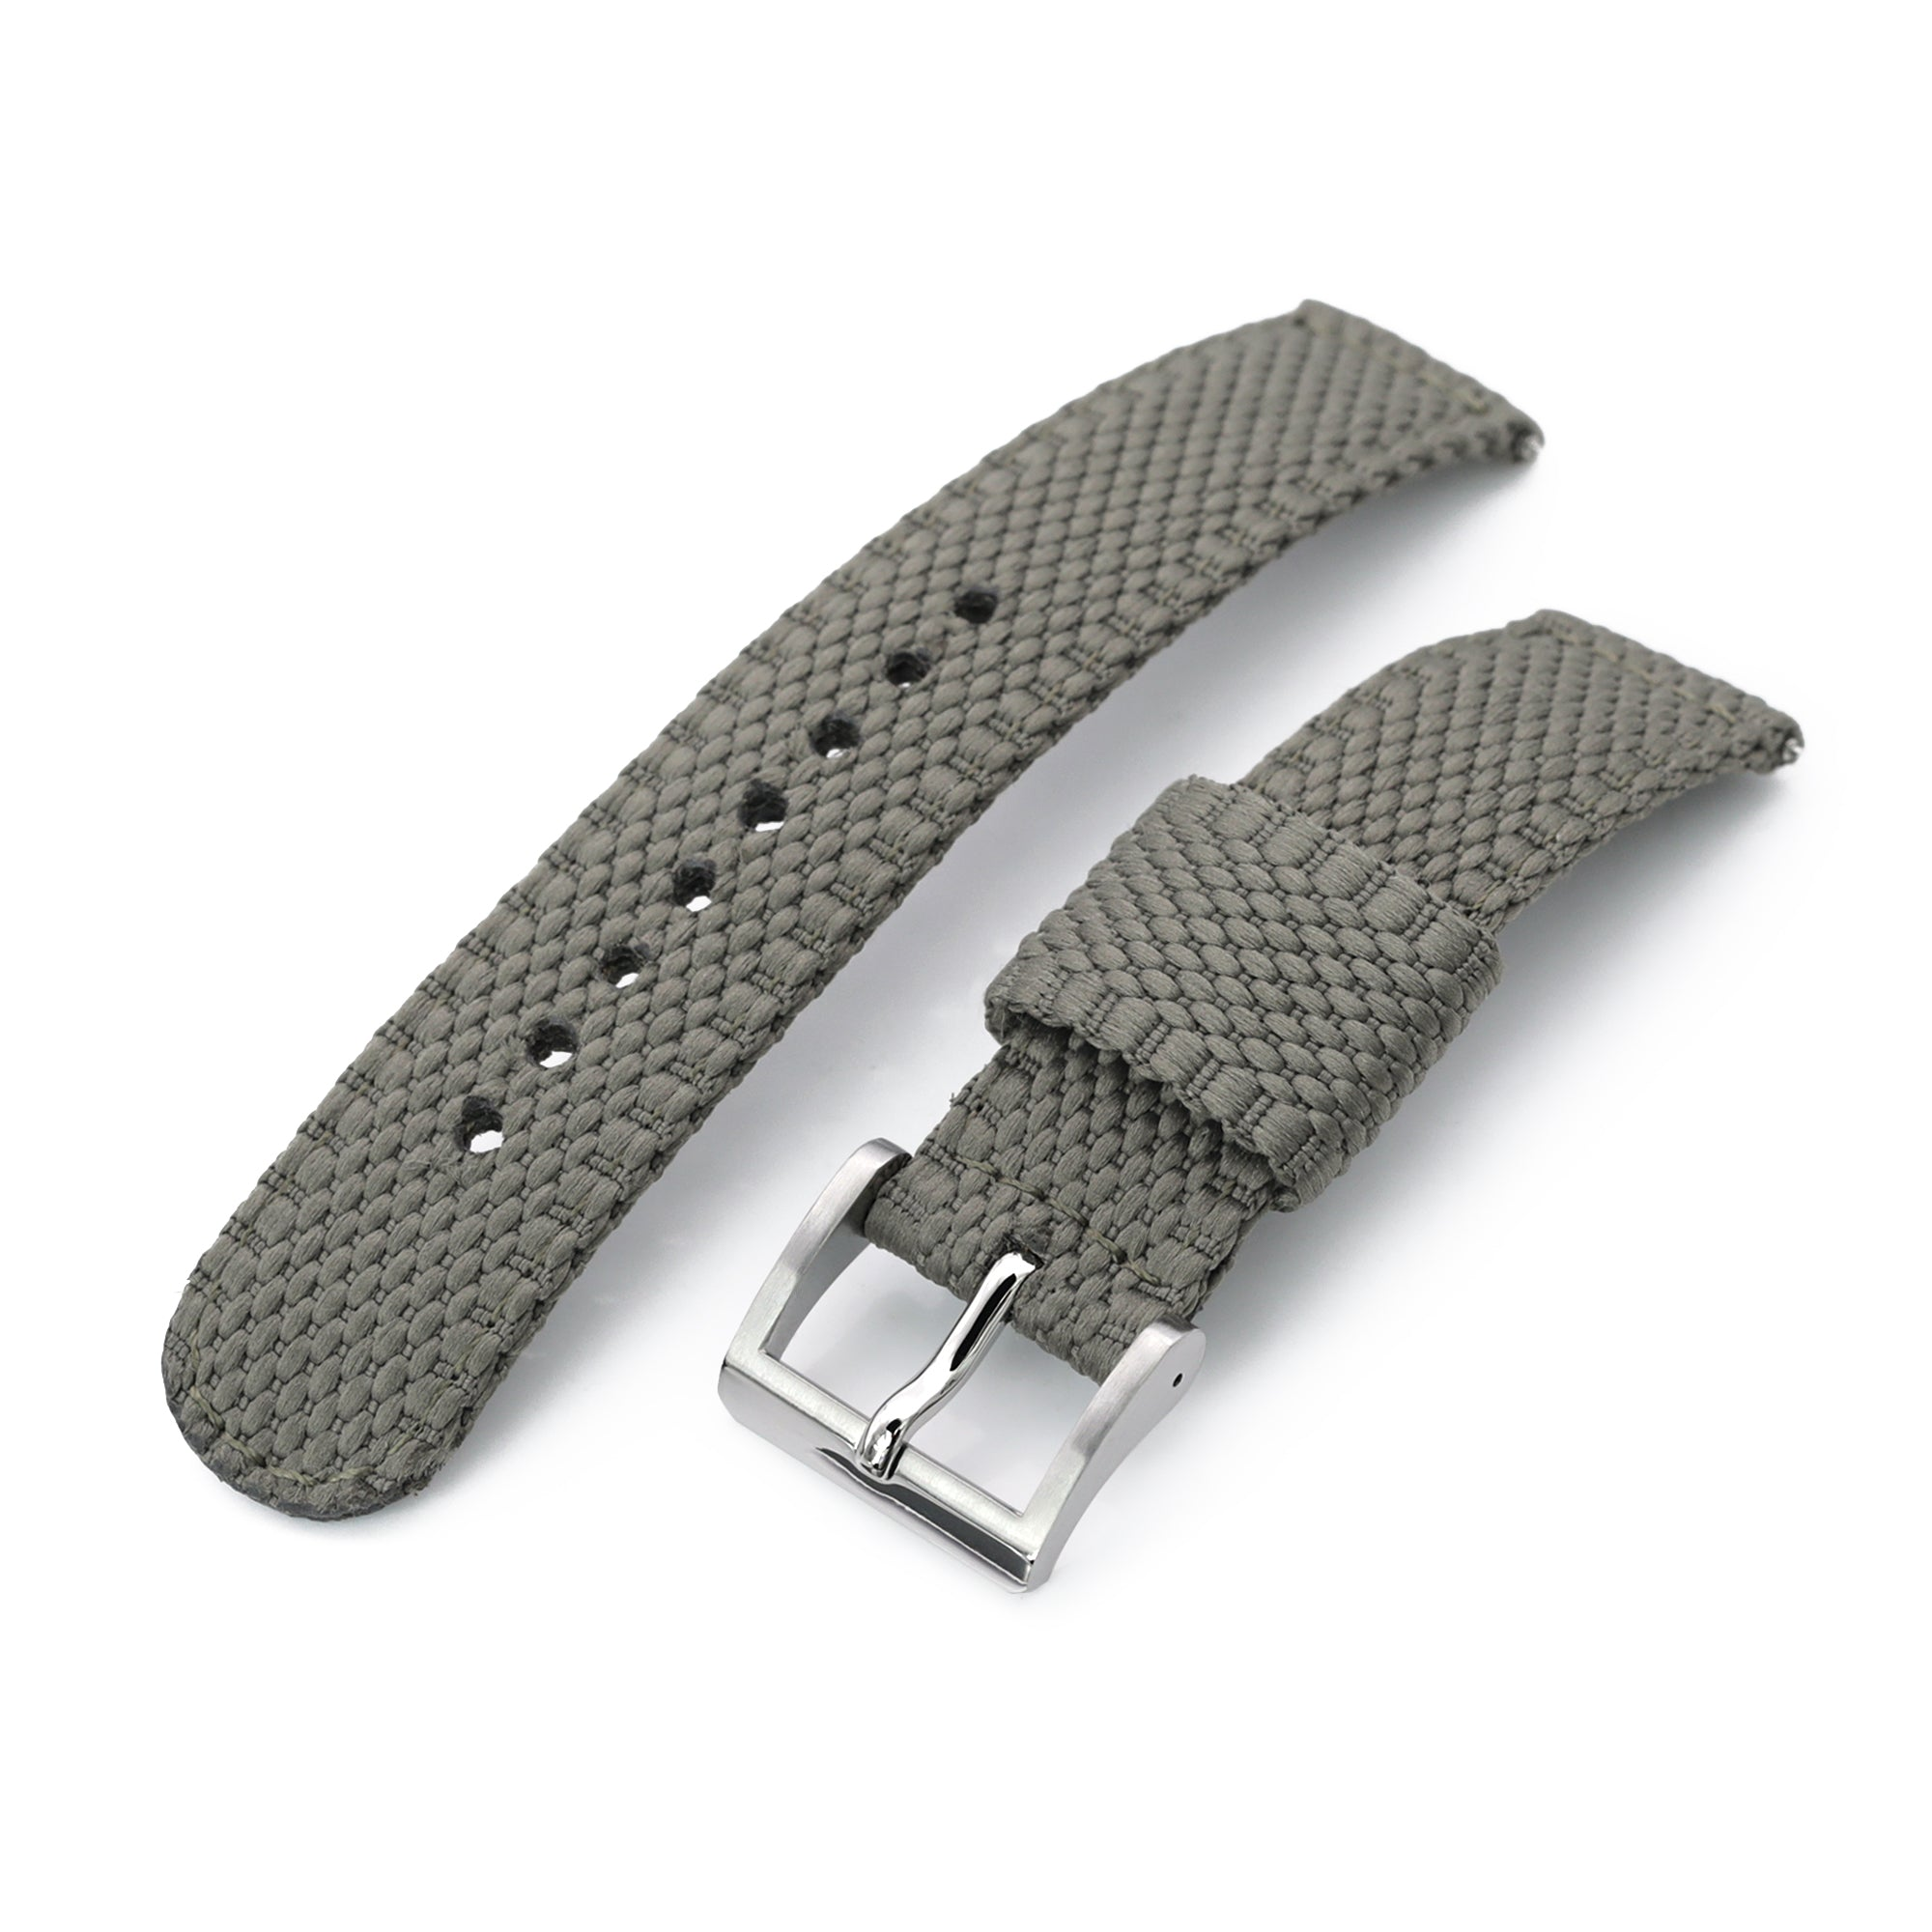 2-pcs Perlon Unique Pattern Military Green Watch Band, Polished Buckle Strapcode Watch Bands